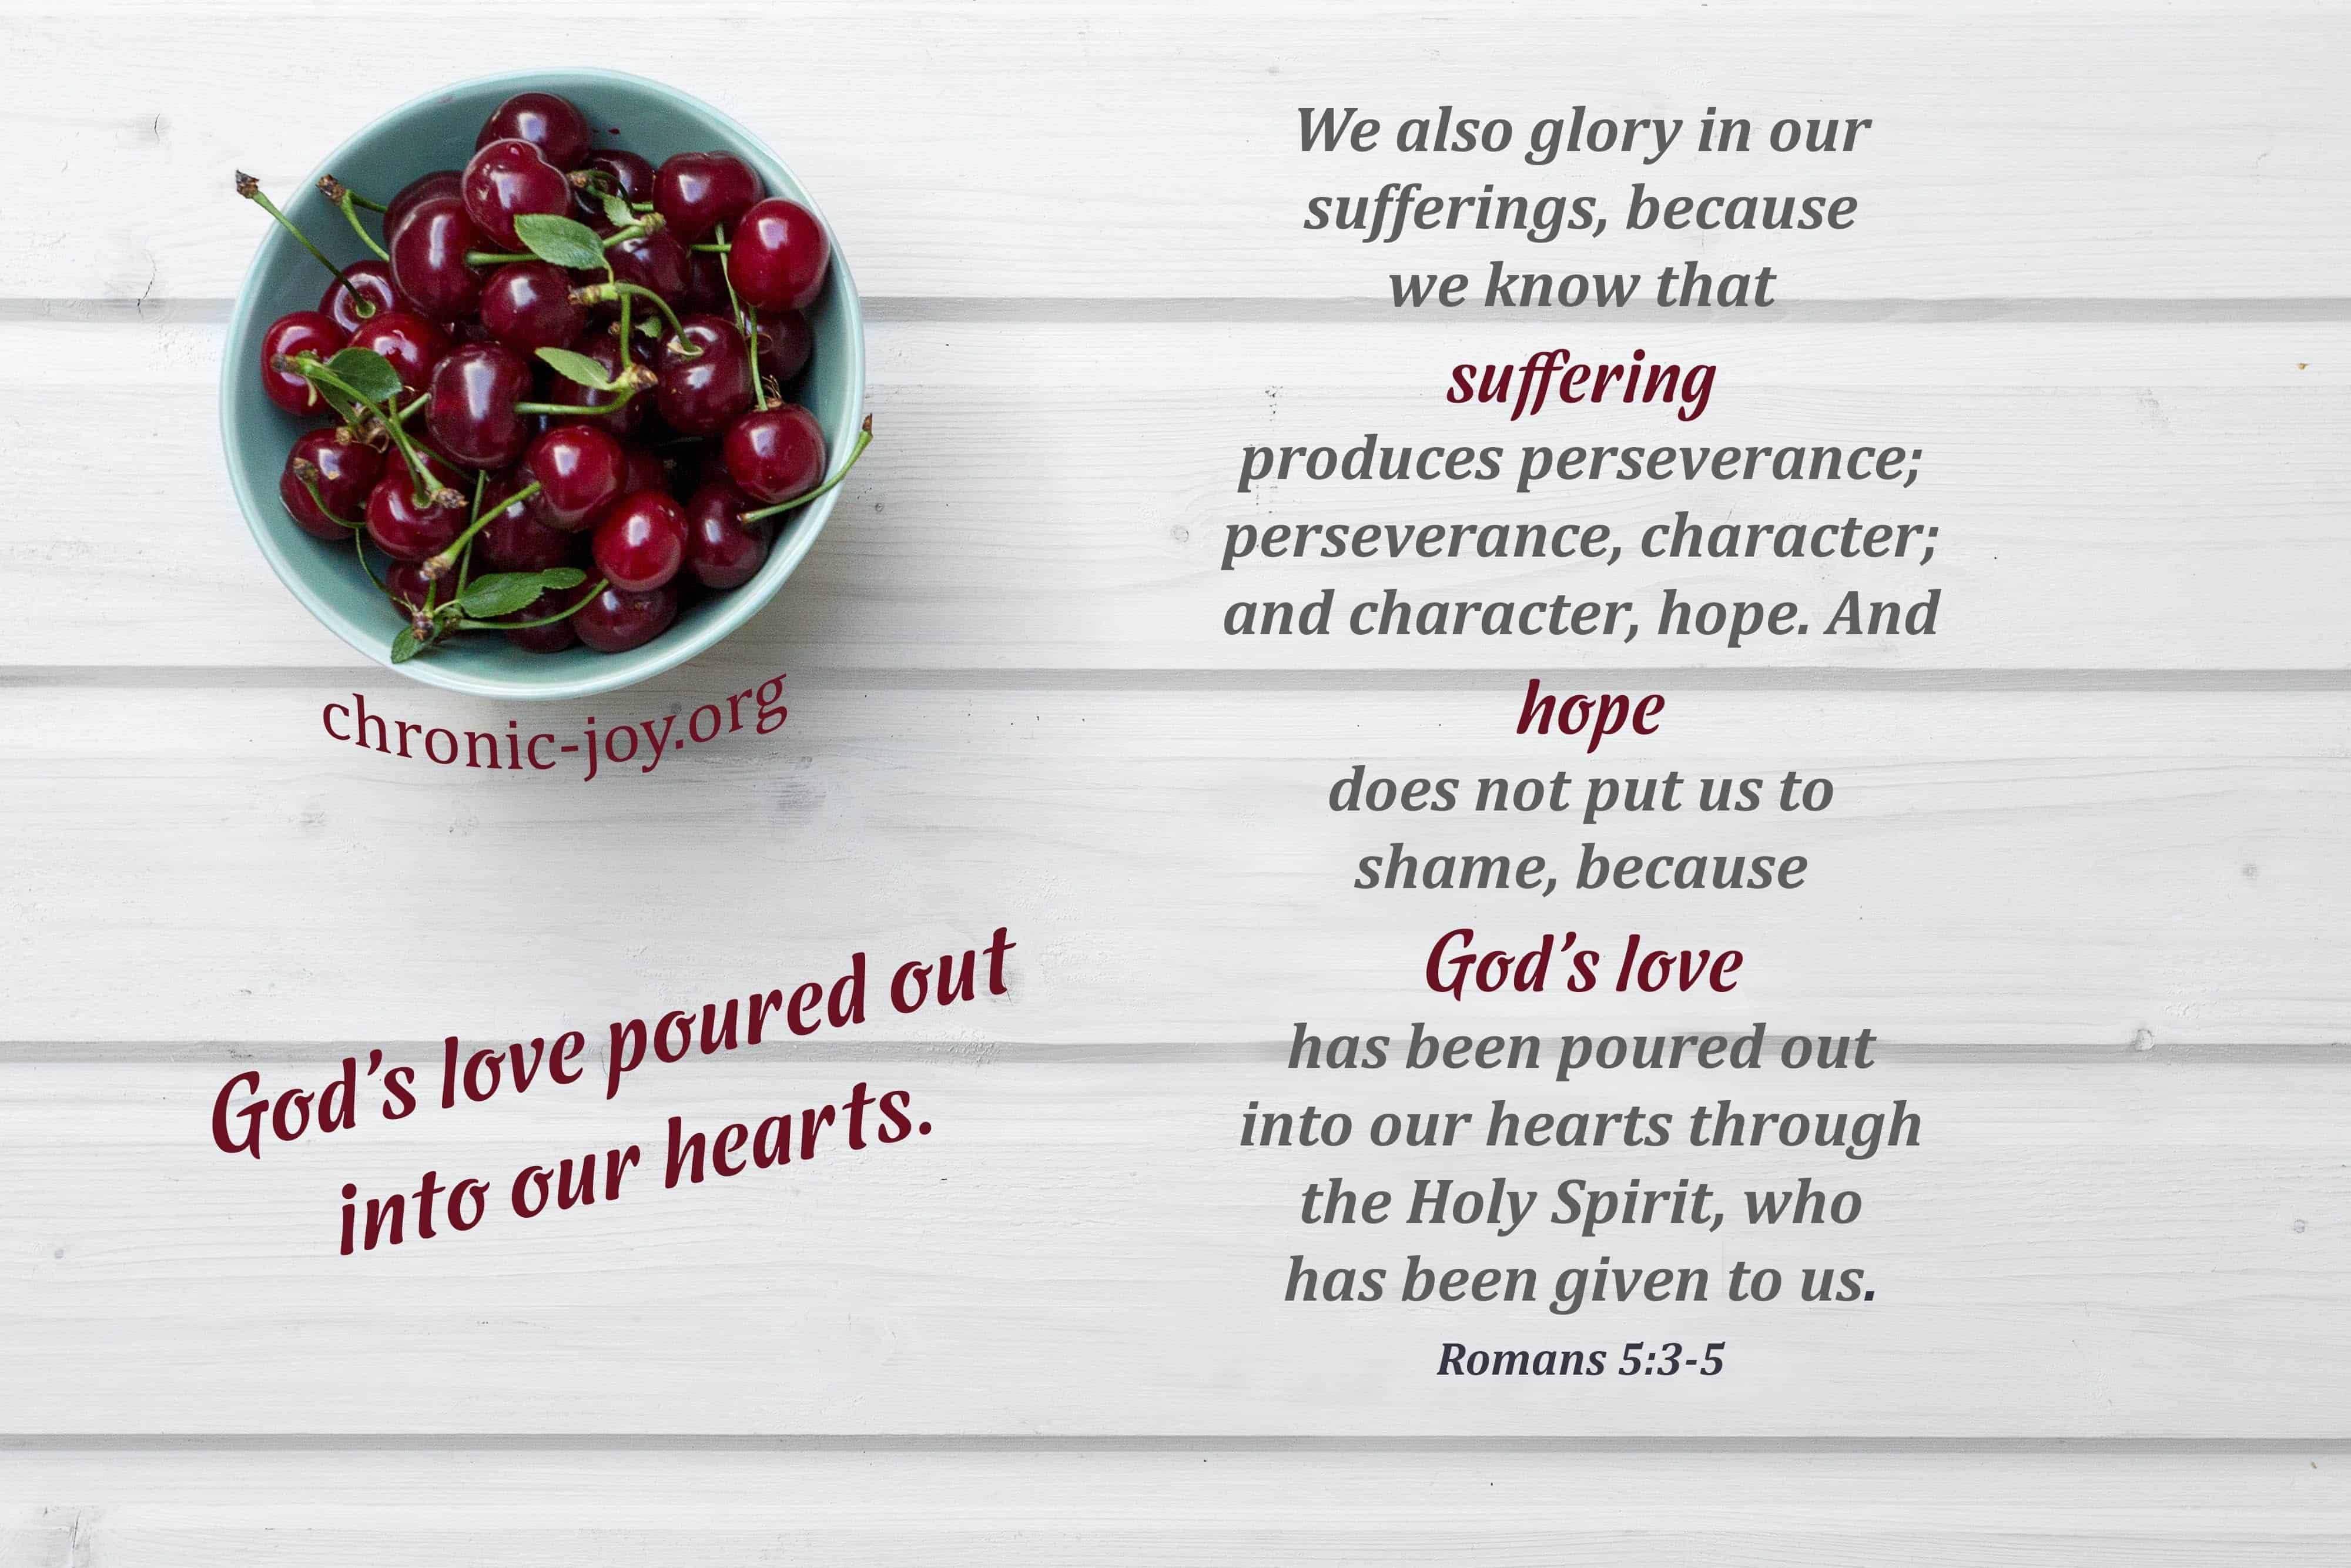 God's love poured out into our hearts.